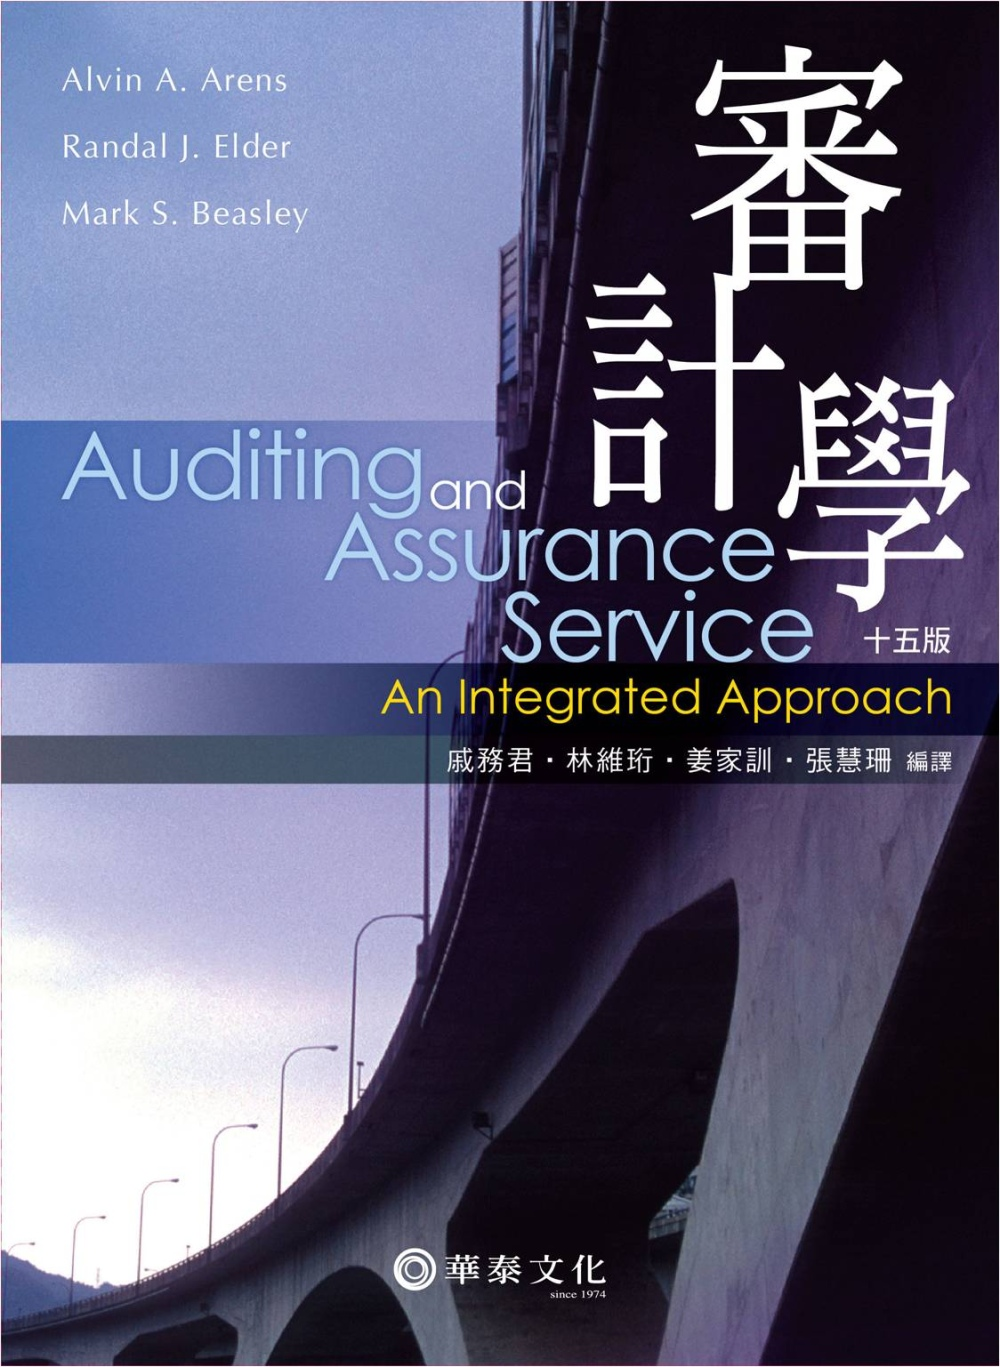 審計學^(Arens Auditing and Assurance Services: A